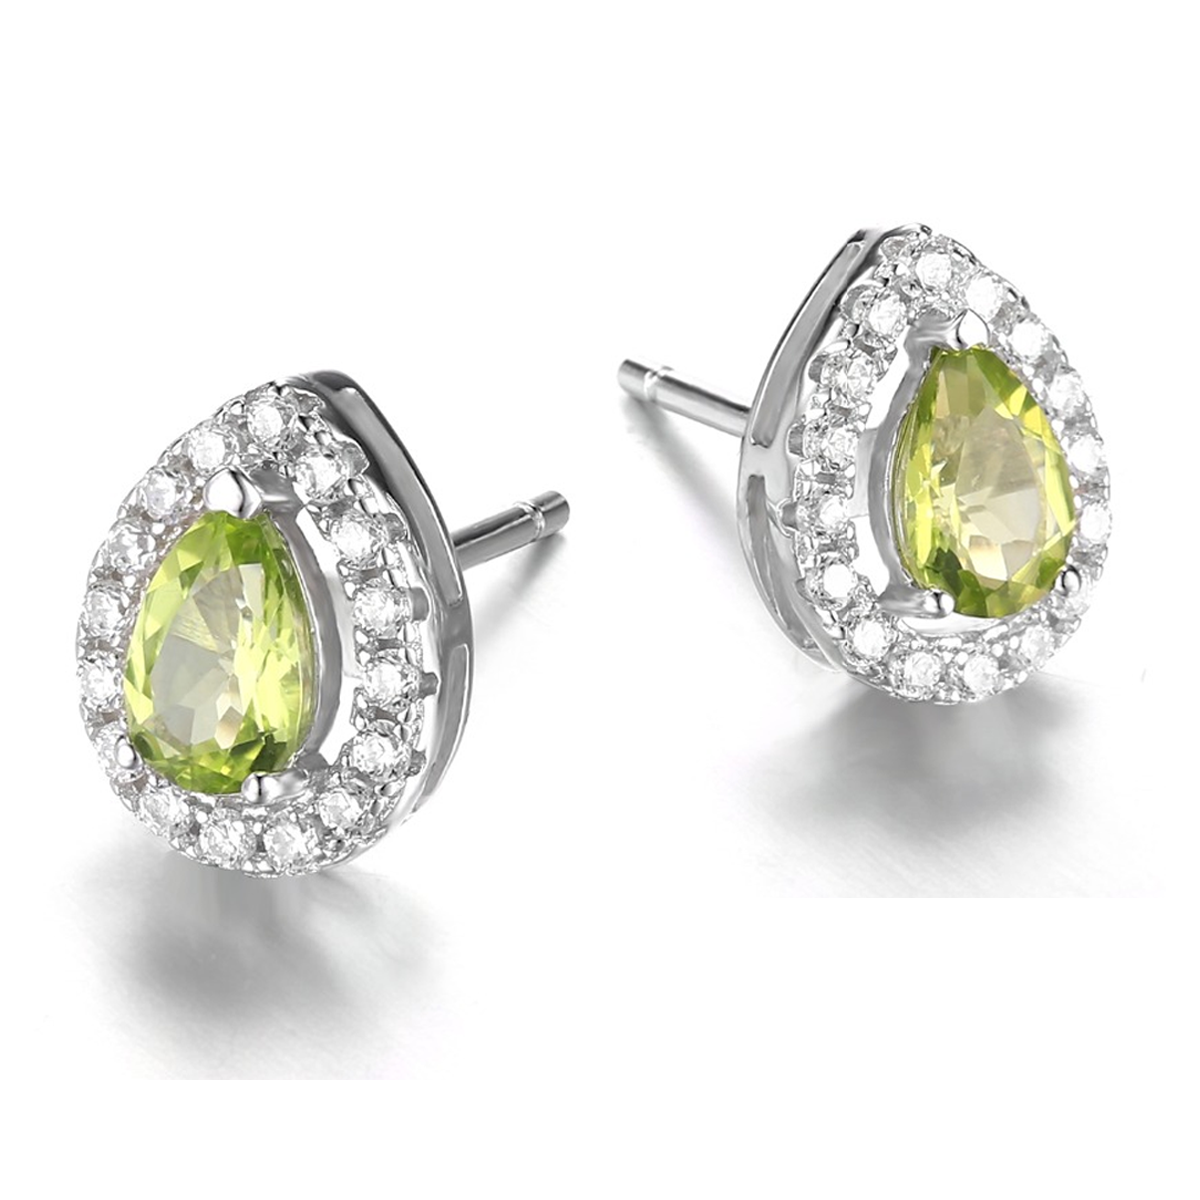 silver or earrings gold stone stud peridot usa carlos arizona reservation san platinum